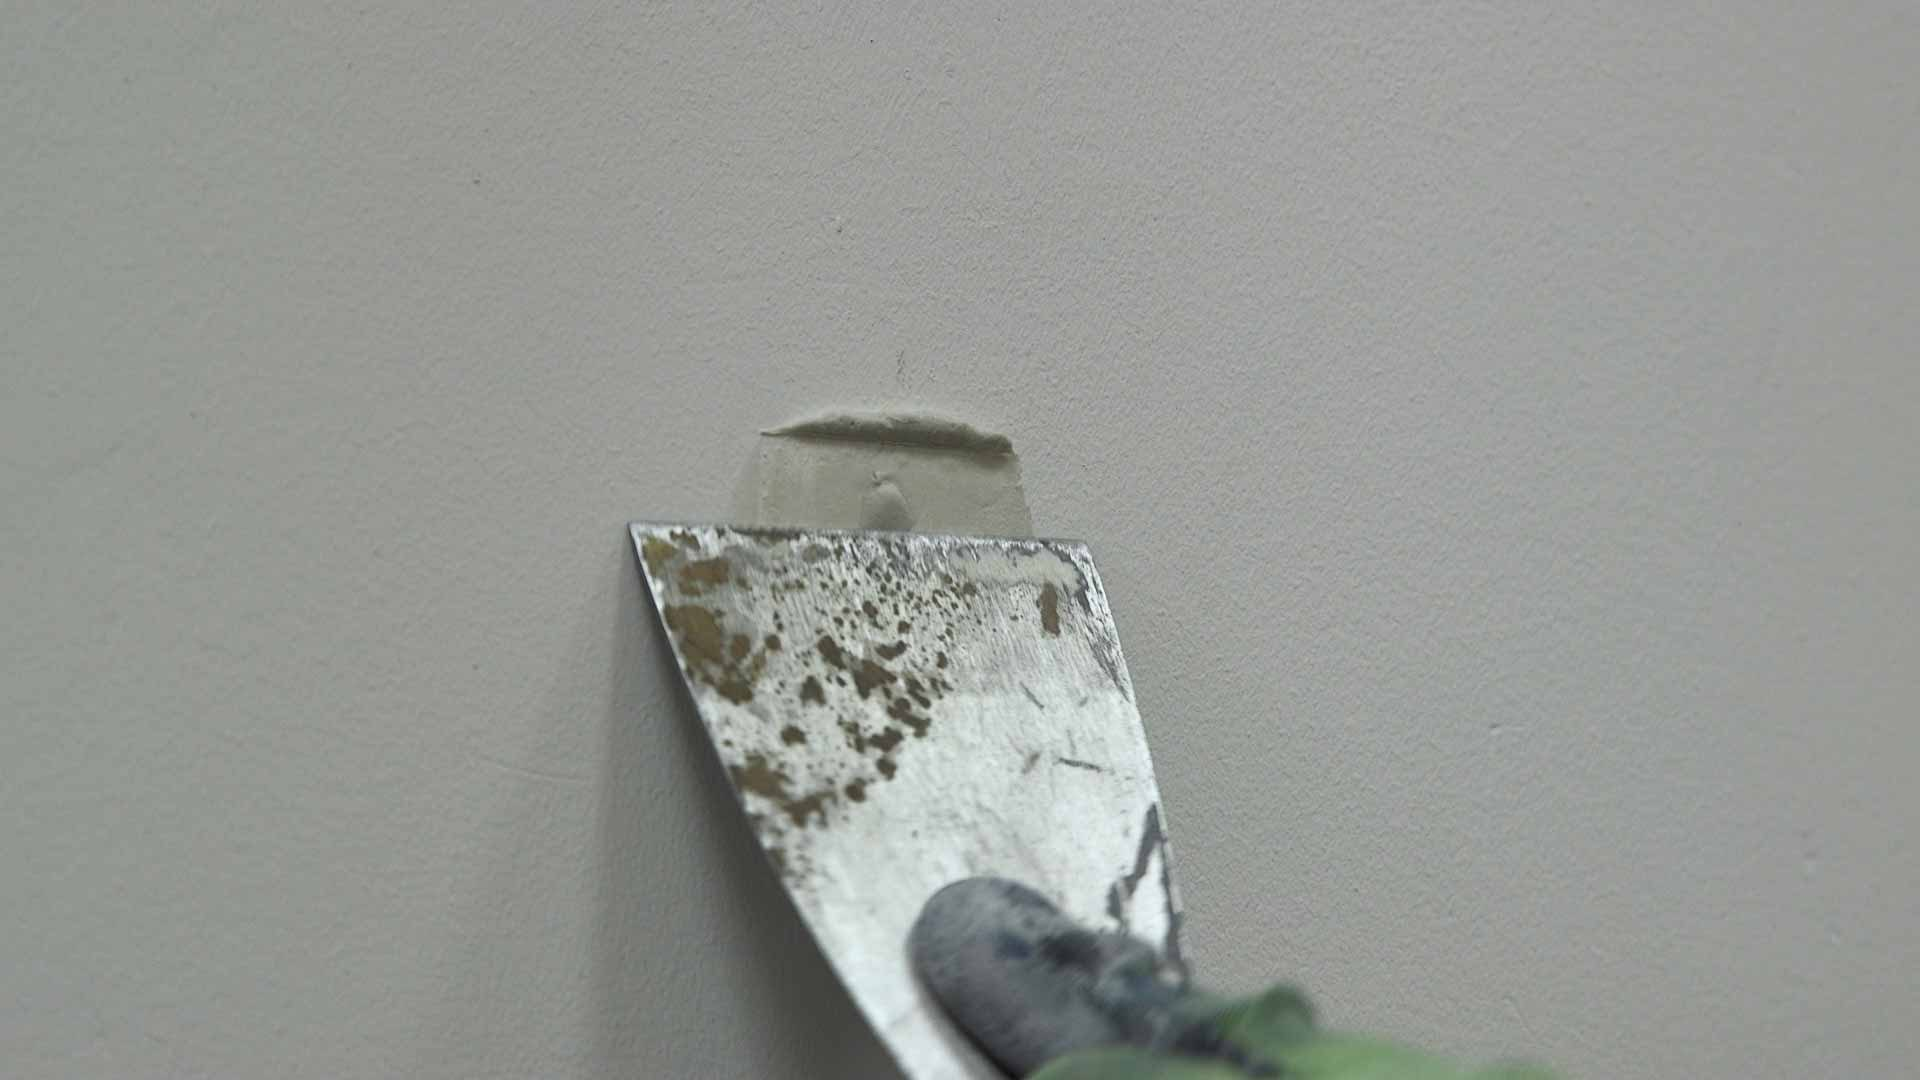 Applying filler to the crack or hole